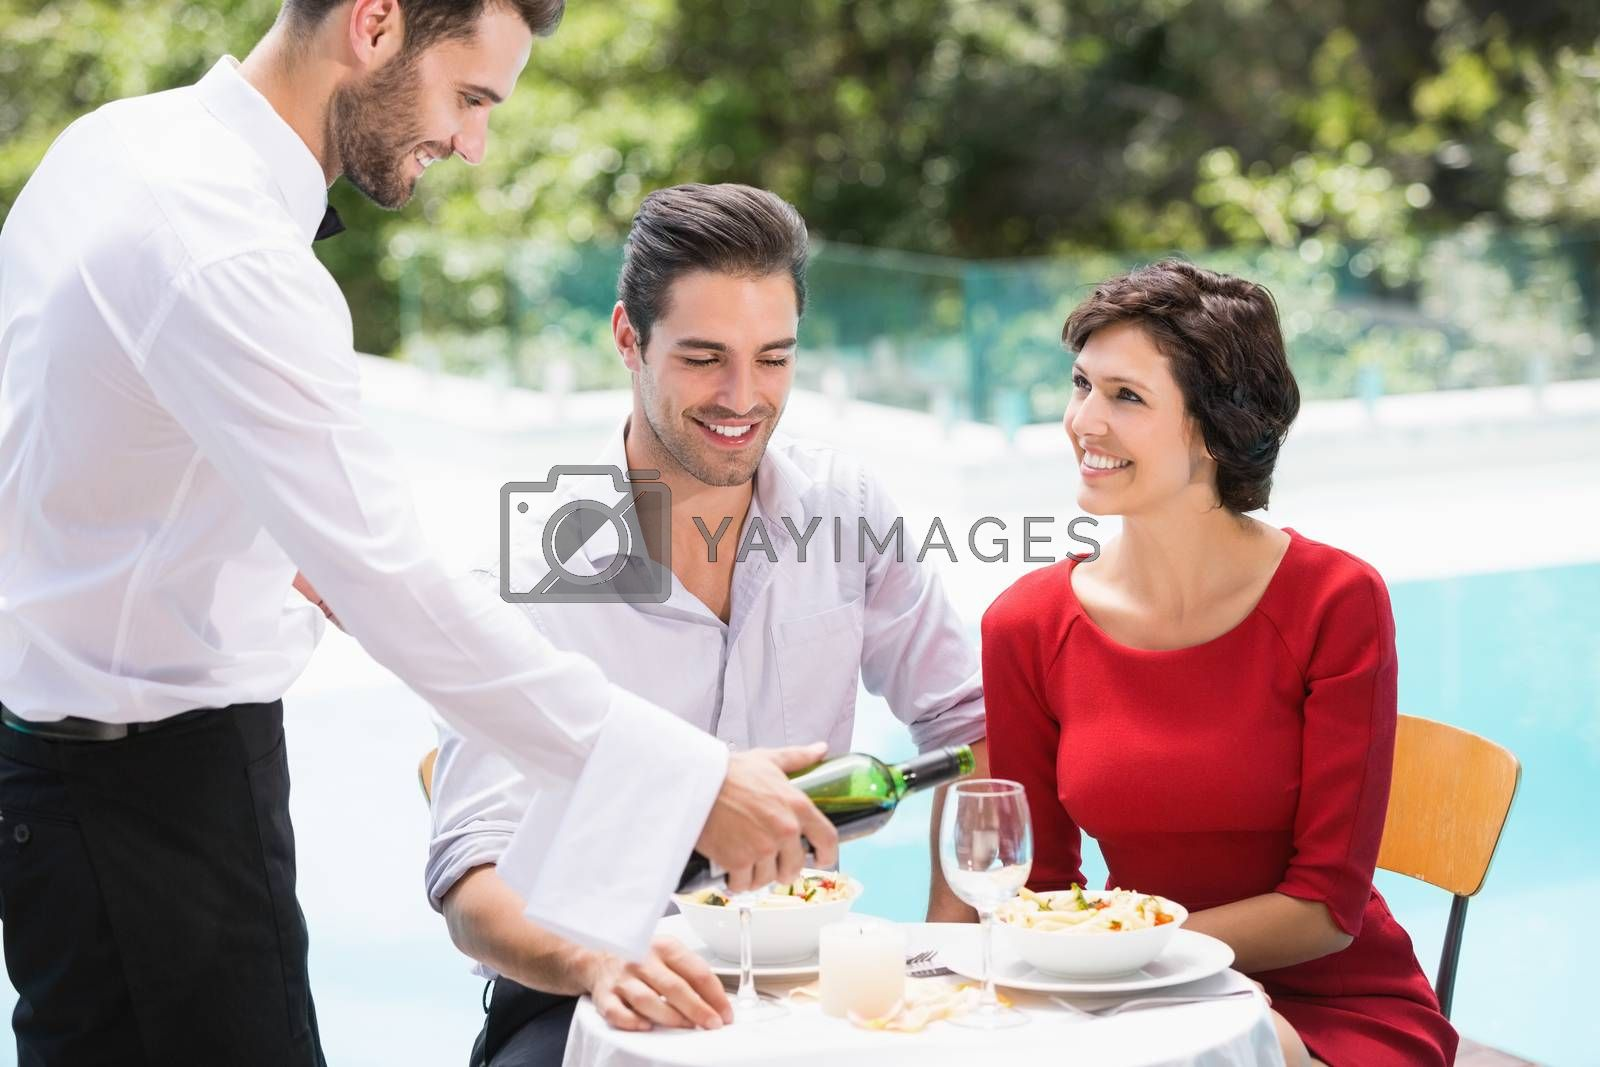 Smiling waiter serving red wine to couple at poolside